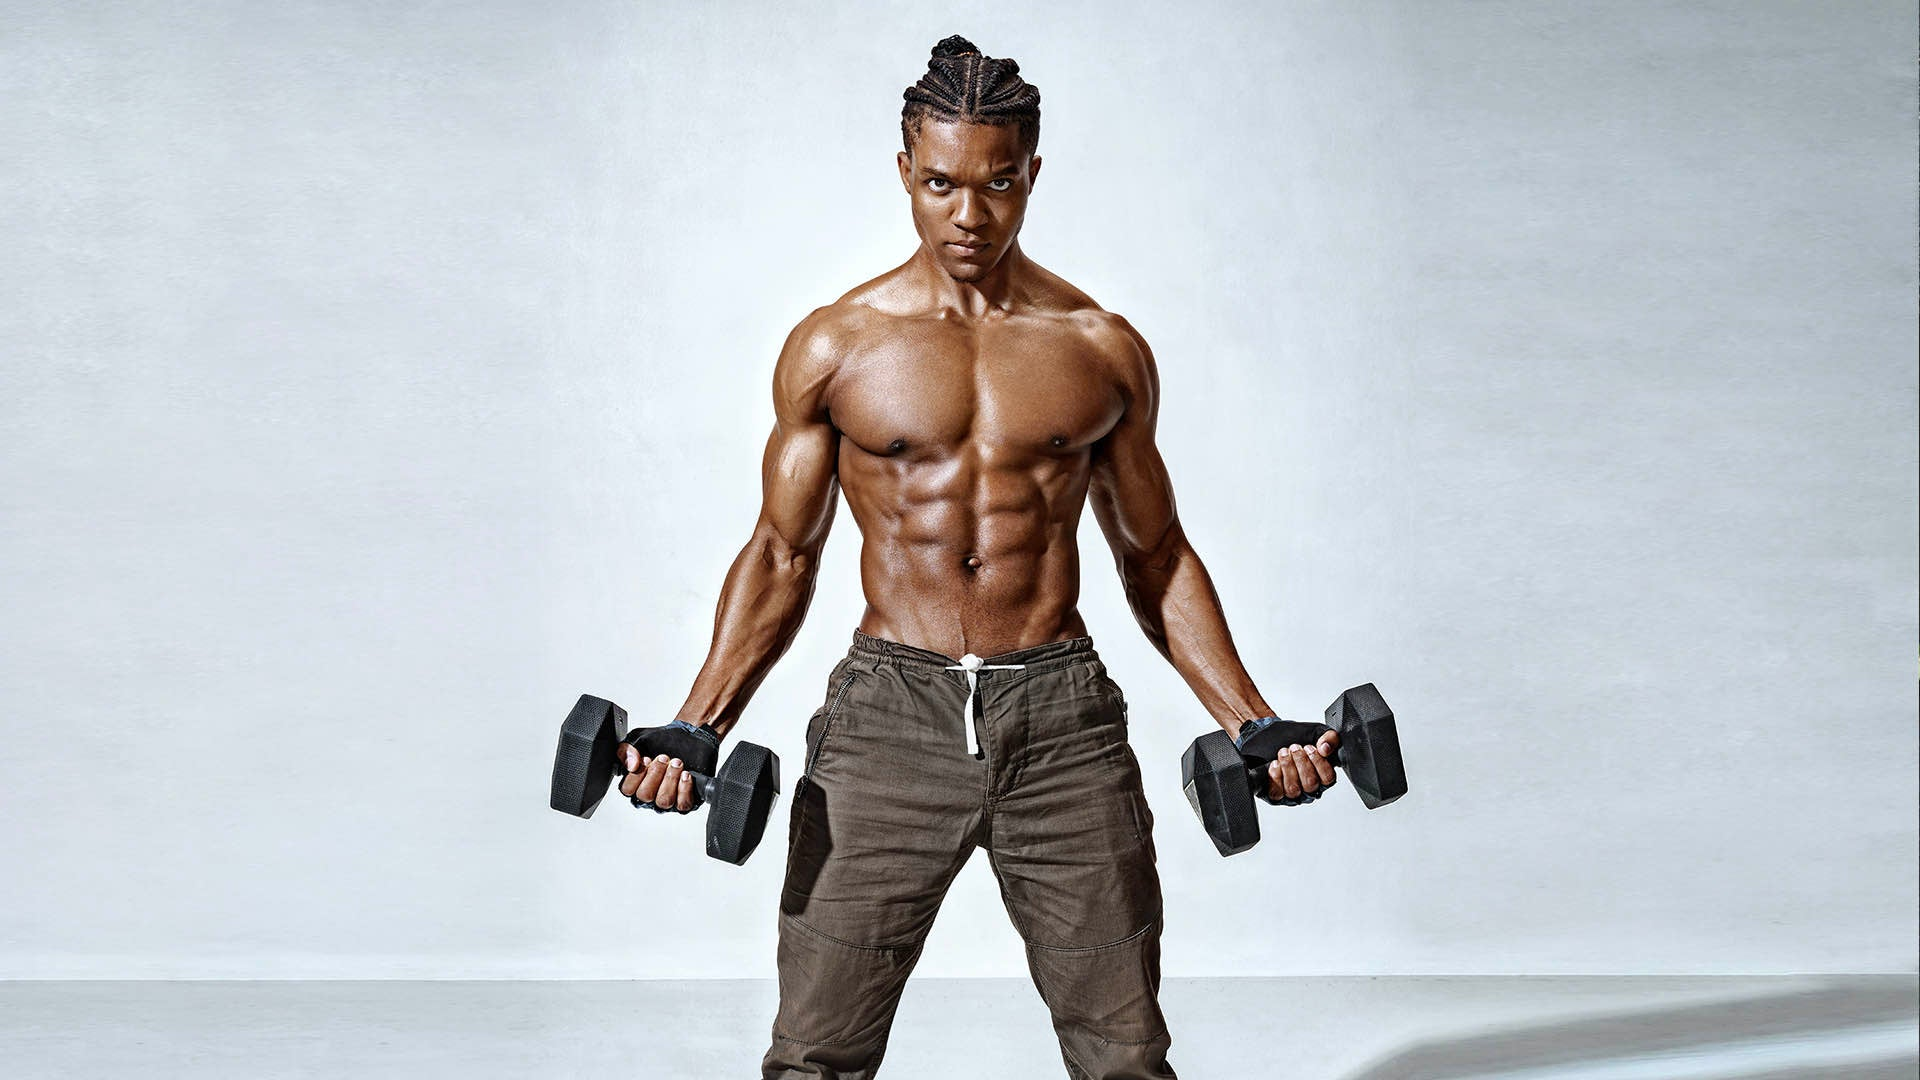 Phosphatidylserine for training and recovery